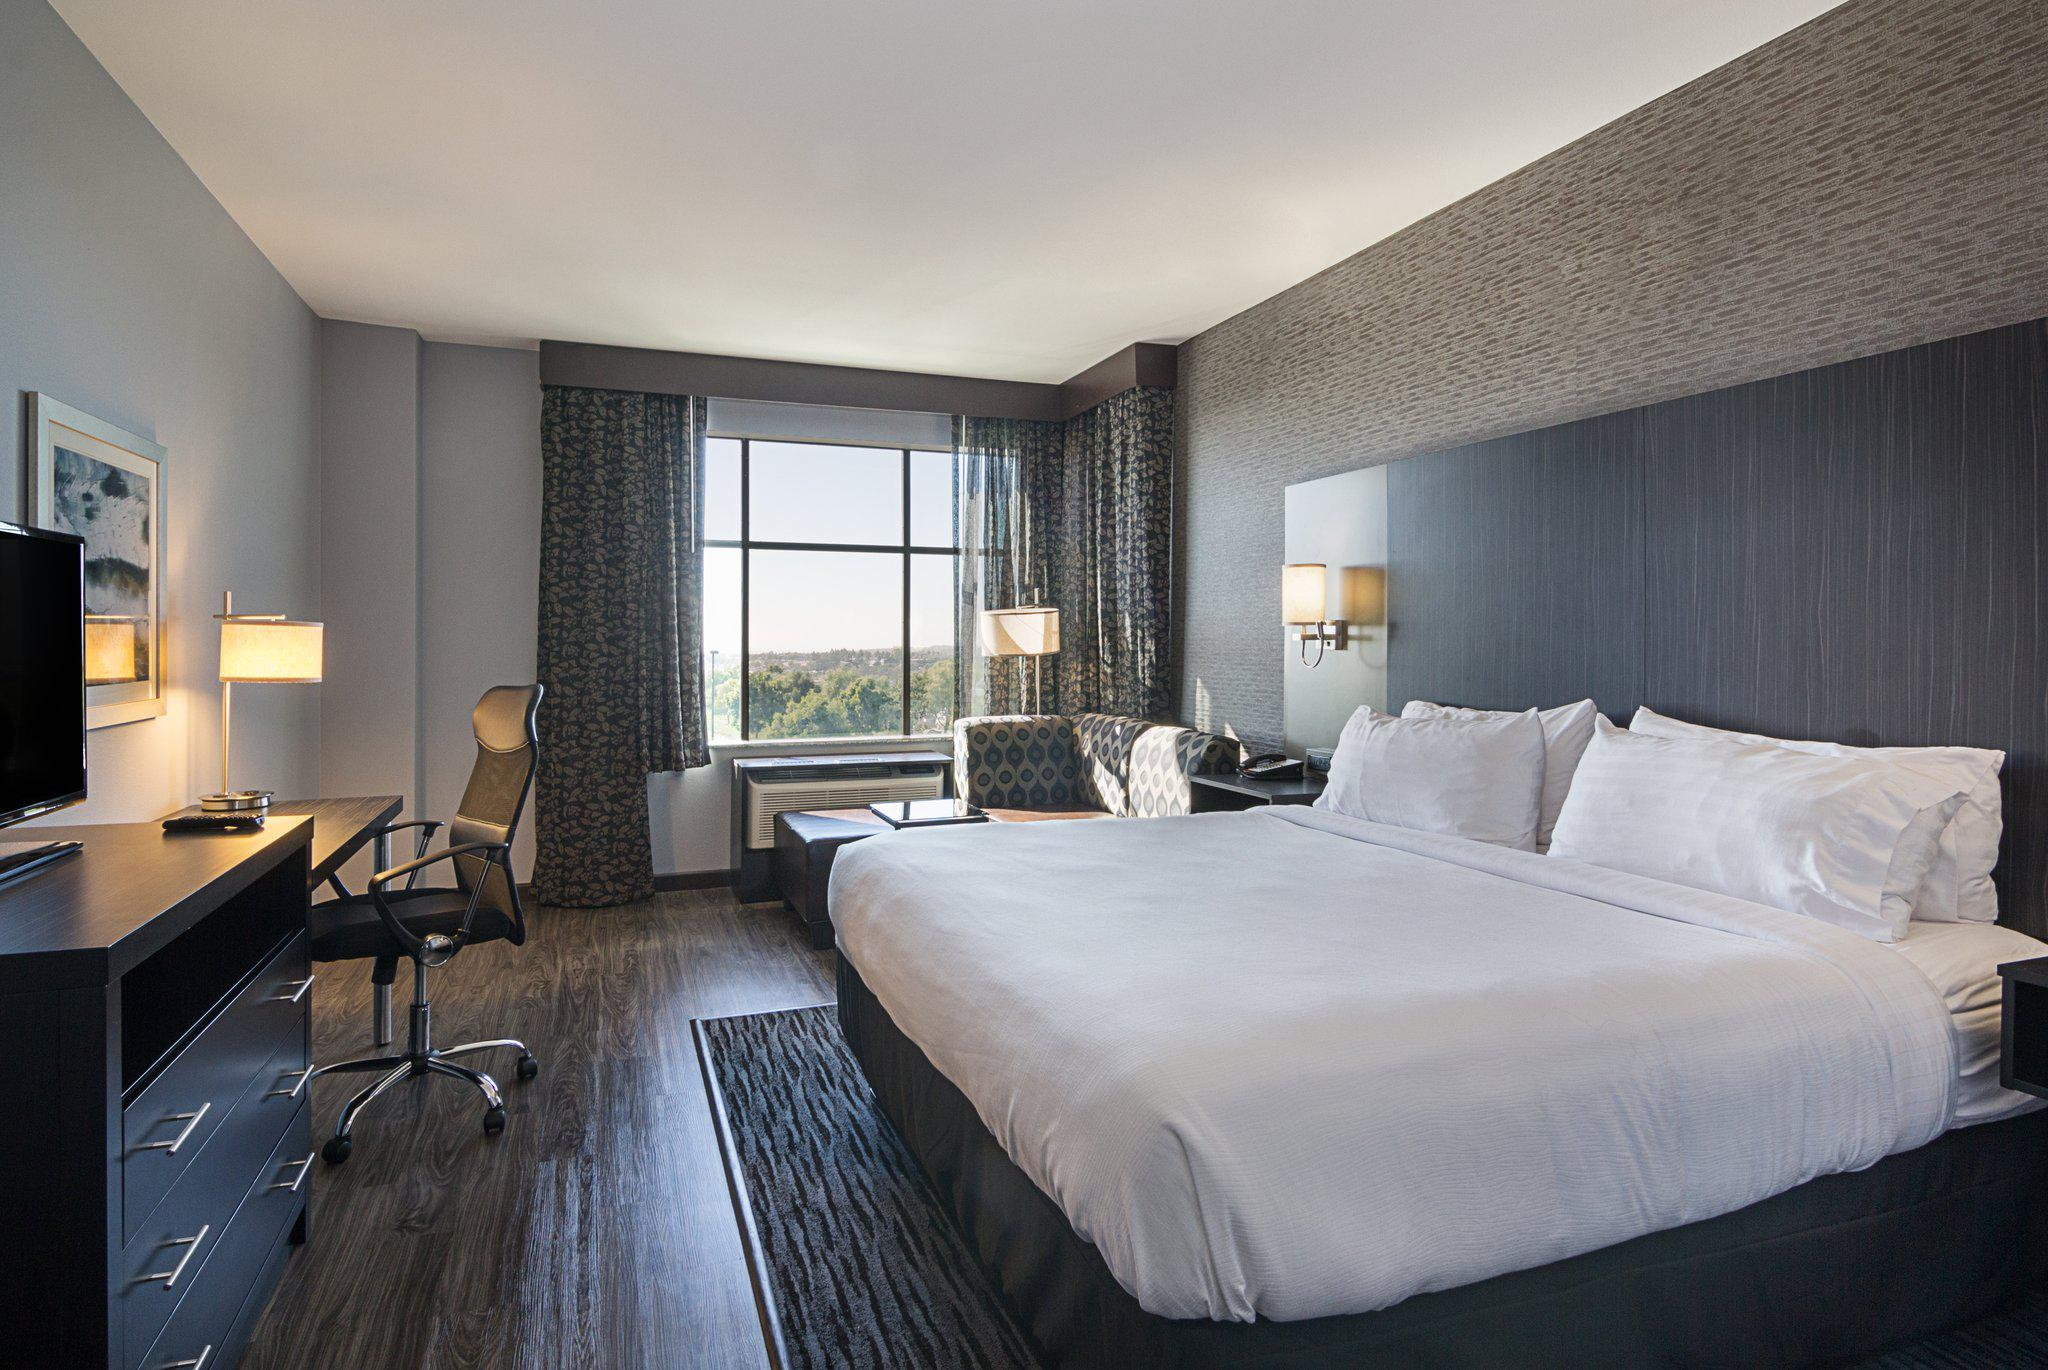 Holiday Inn & Suites Silicon Valley - Milpitas, an IHG Hotel